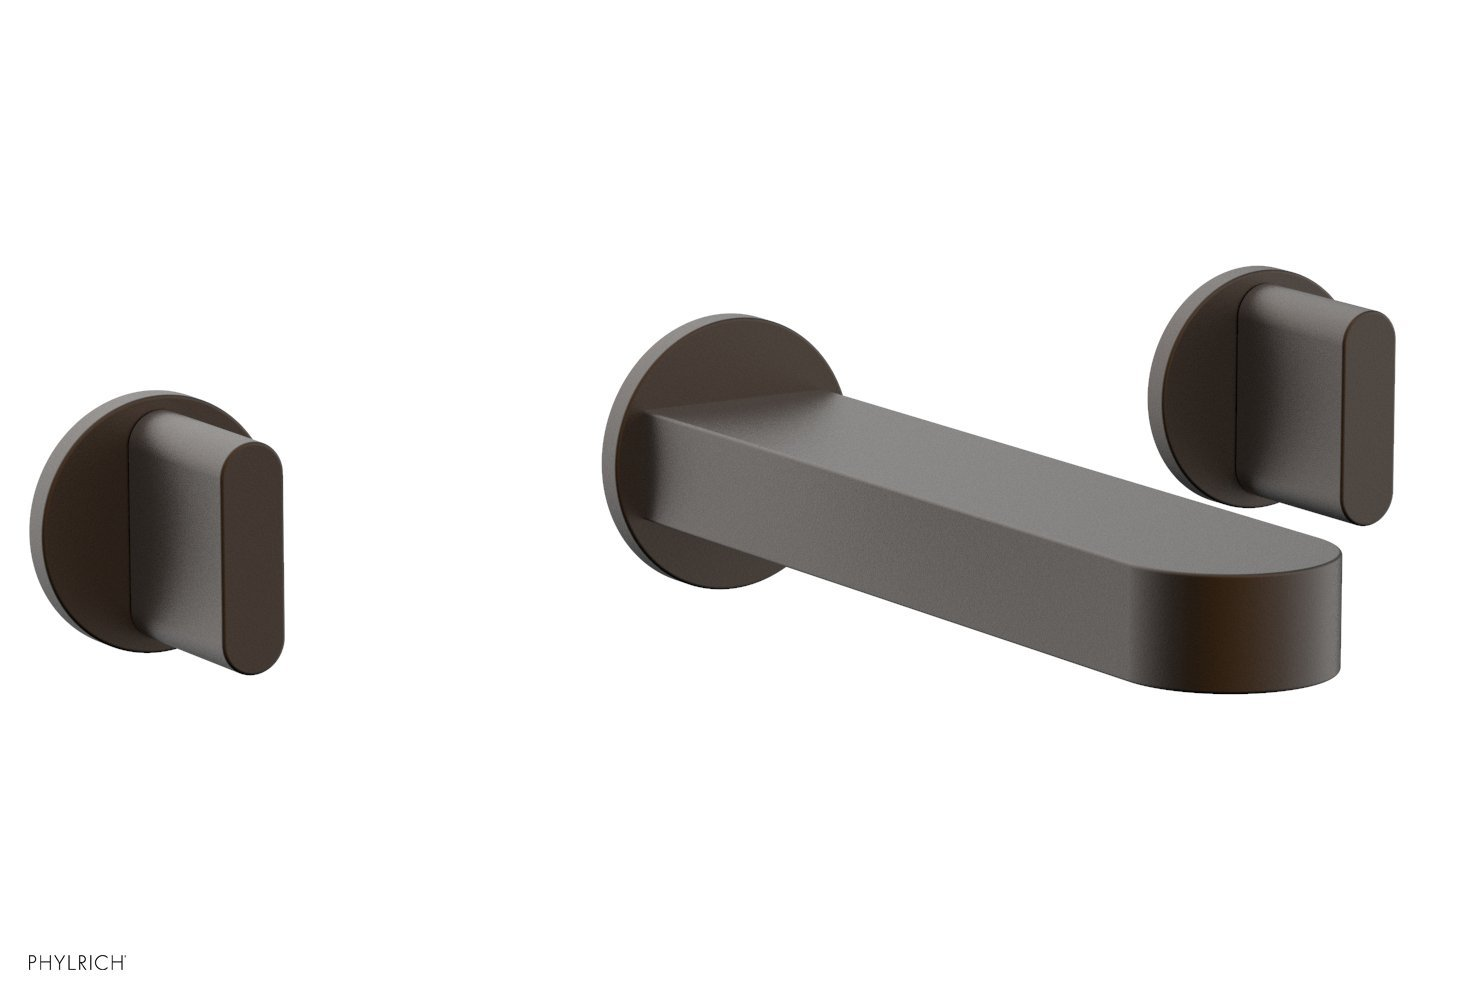 Phylrich 183-11-10B ROND Wall Lavatory Set - Blade Handles - Oil Rubbed Bronze